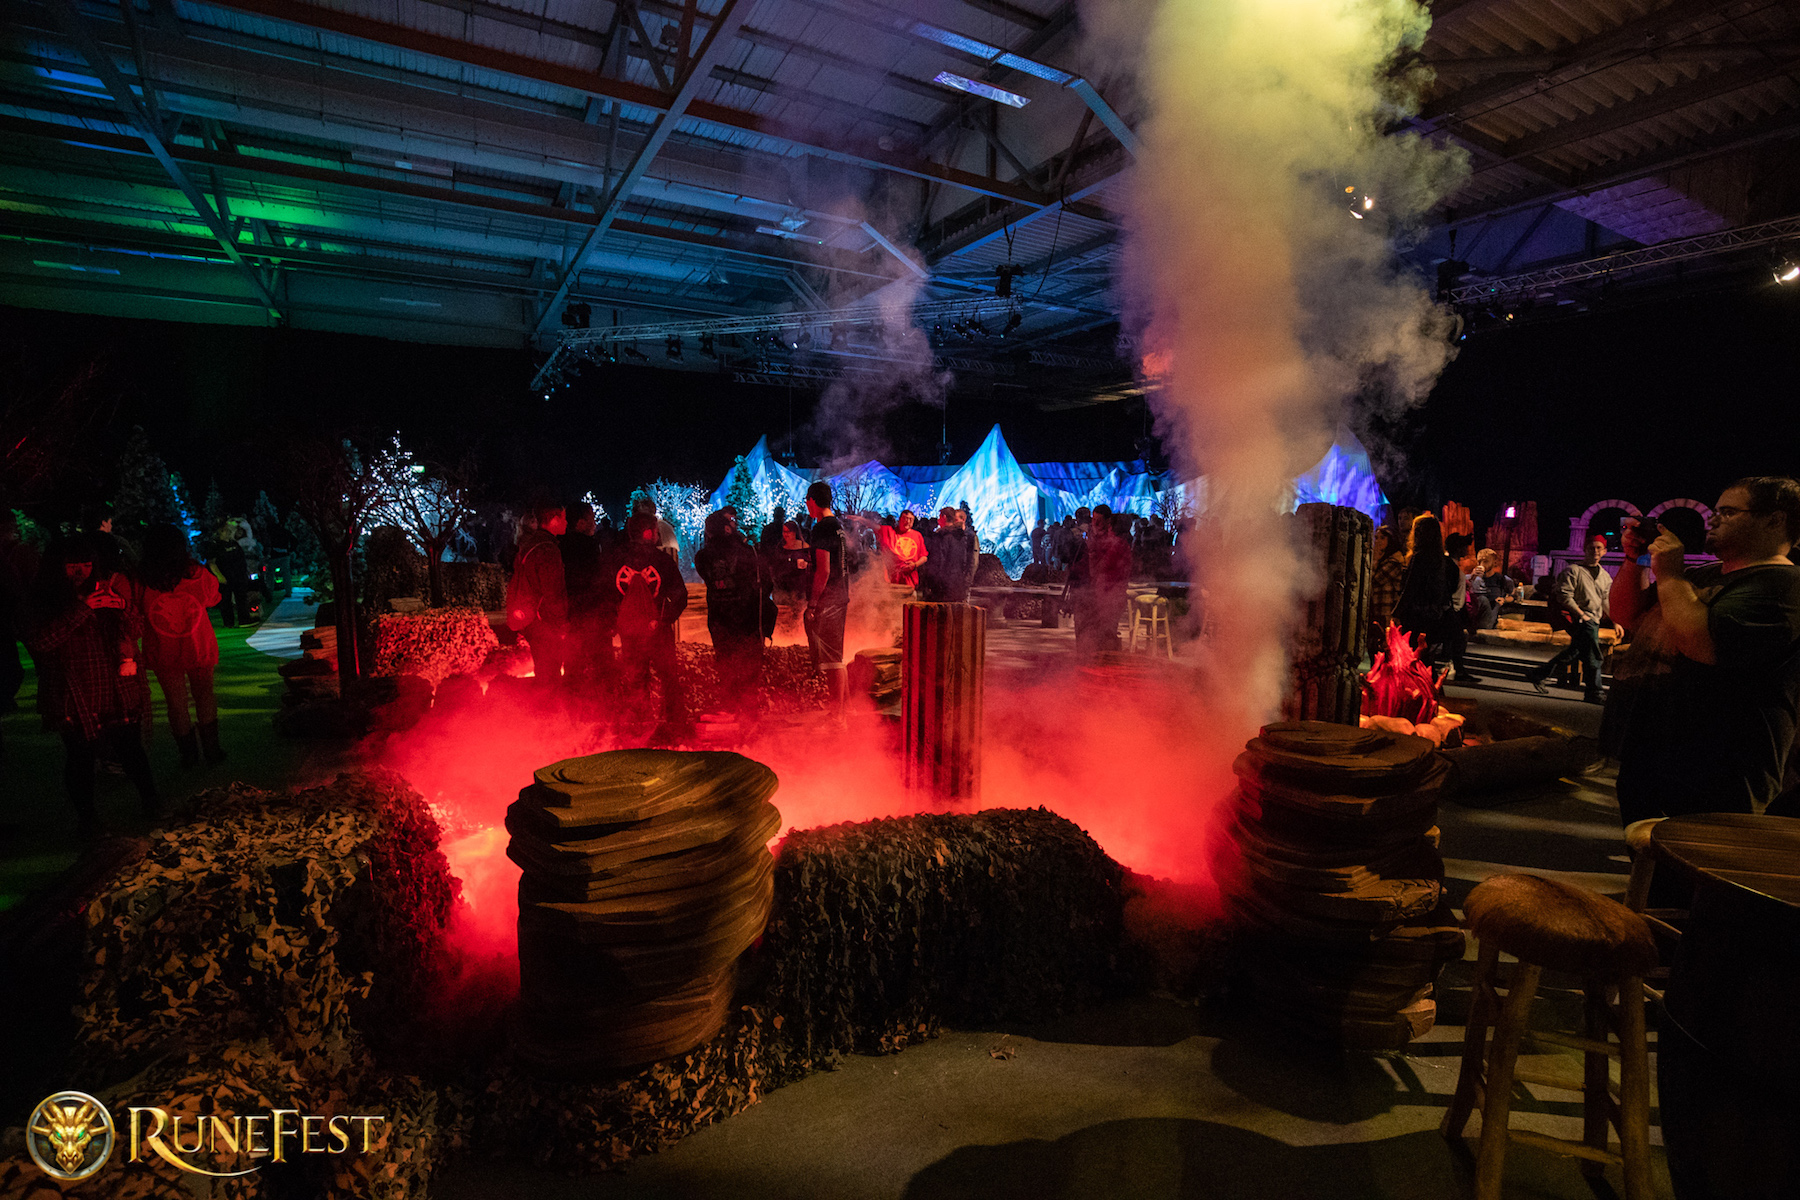 Runefest 2018: Love, swords, games, and music in the heart of middle-England